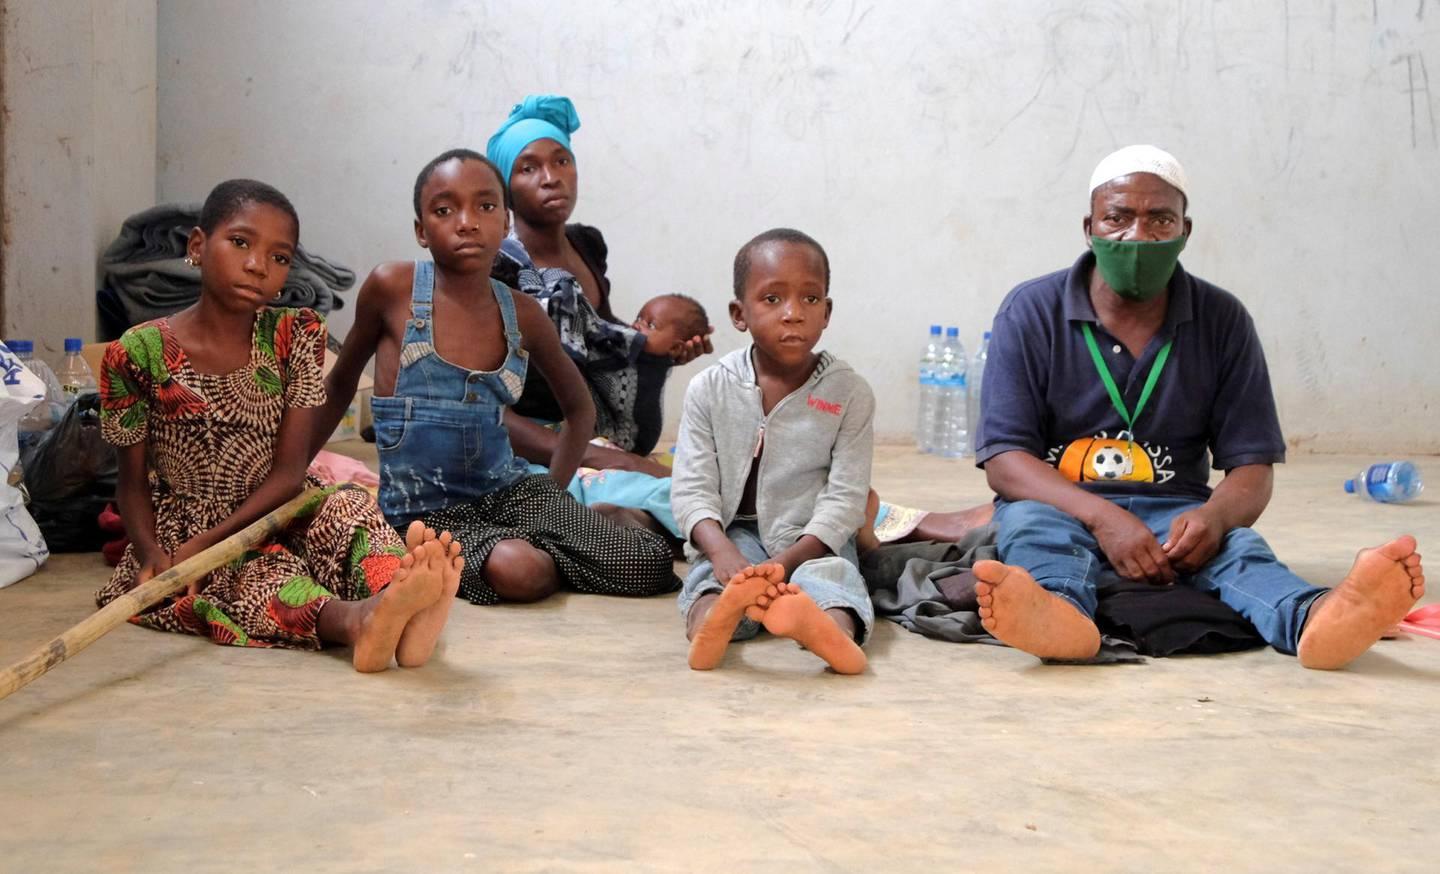 Adelino Alberto and his family who fled an attack claimed by Islamic State-linked insurgents on the town of Palma, are seen at a temporary displacement centre in Pemba, Mozambique, April 3, 2021. Picture taken April 3, 2021. REUTERS/Emidio Jozine NO RESALES. NO ARCHIVES